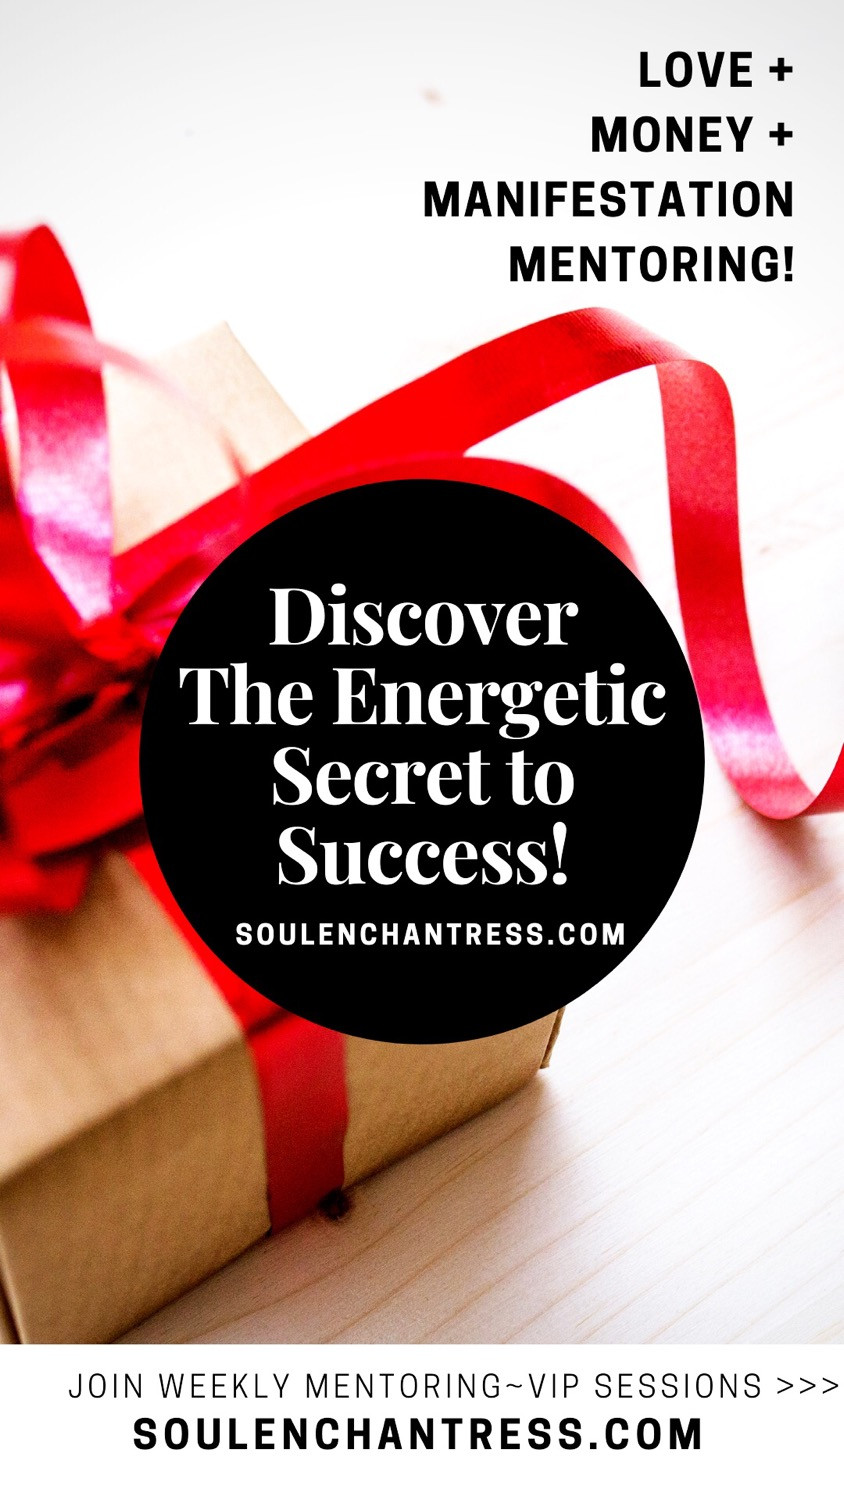 secret to success, energetic secret to success, sound healer, sound bath, sound healing, manifestation mentor, soul enchantress